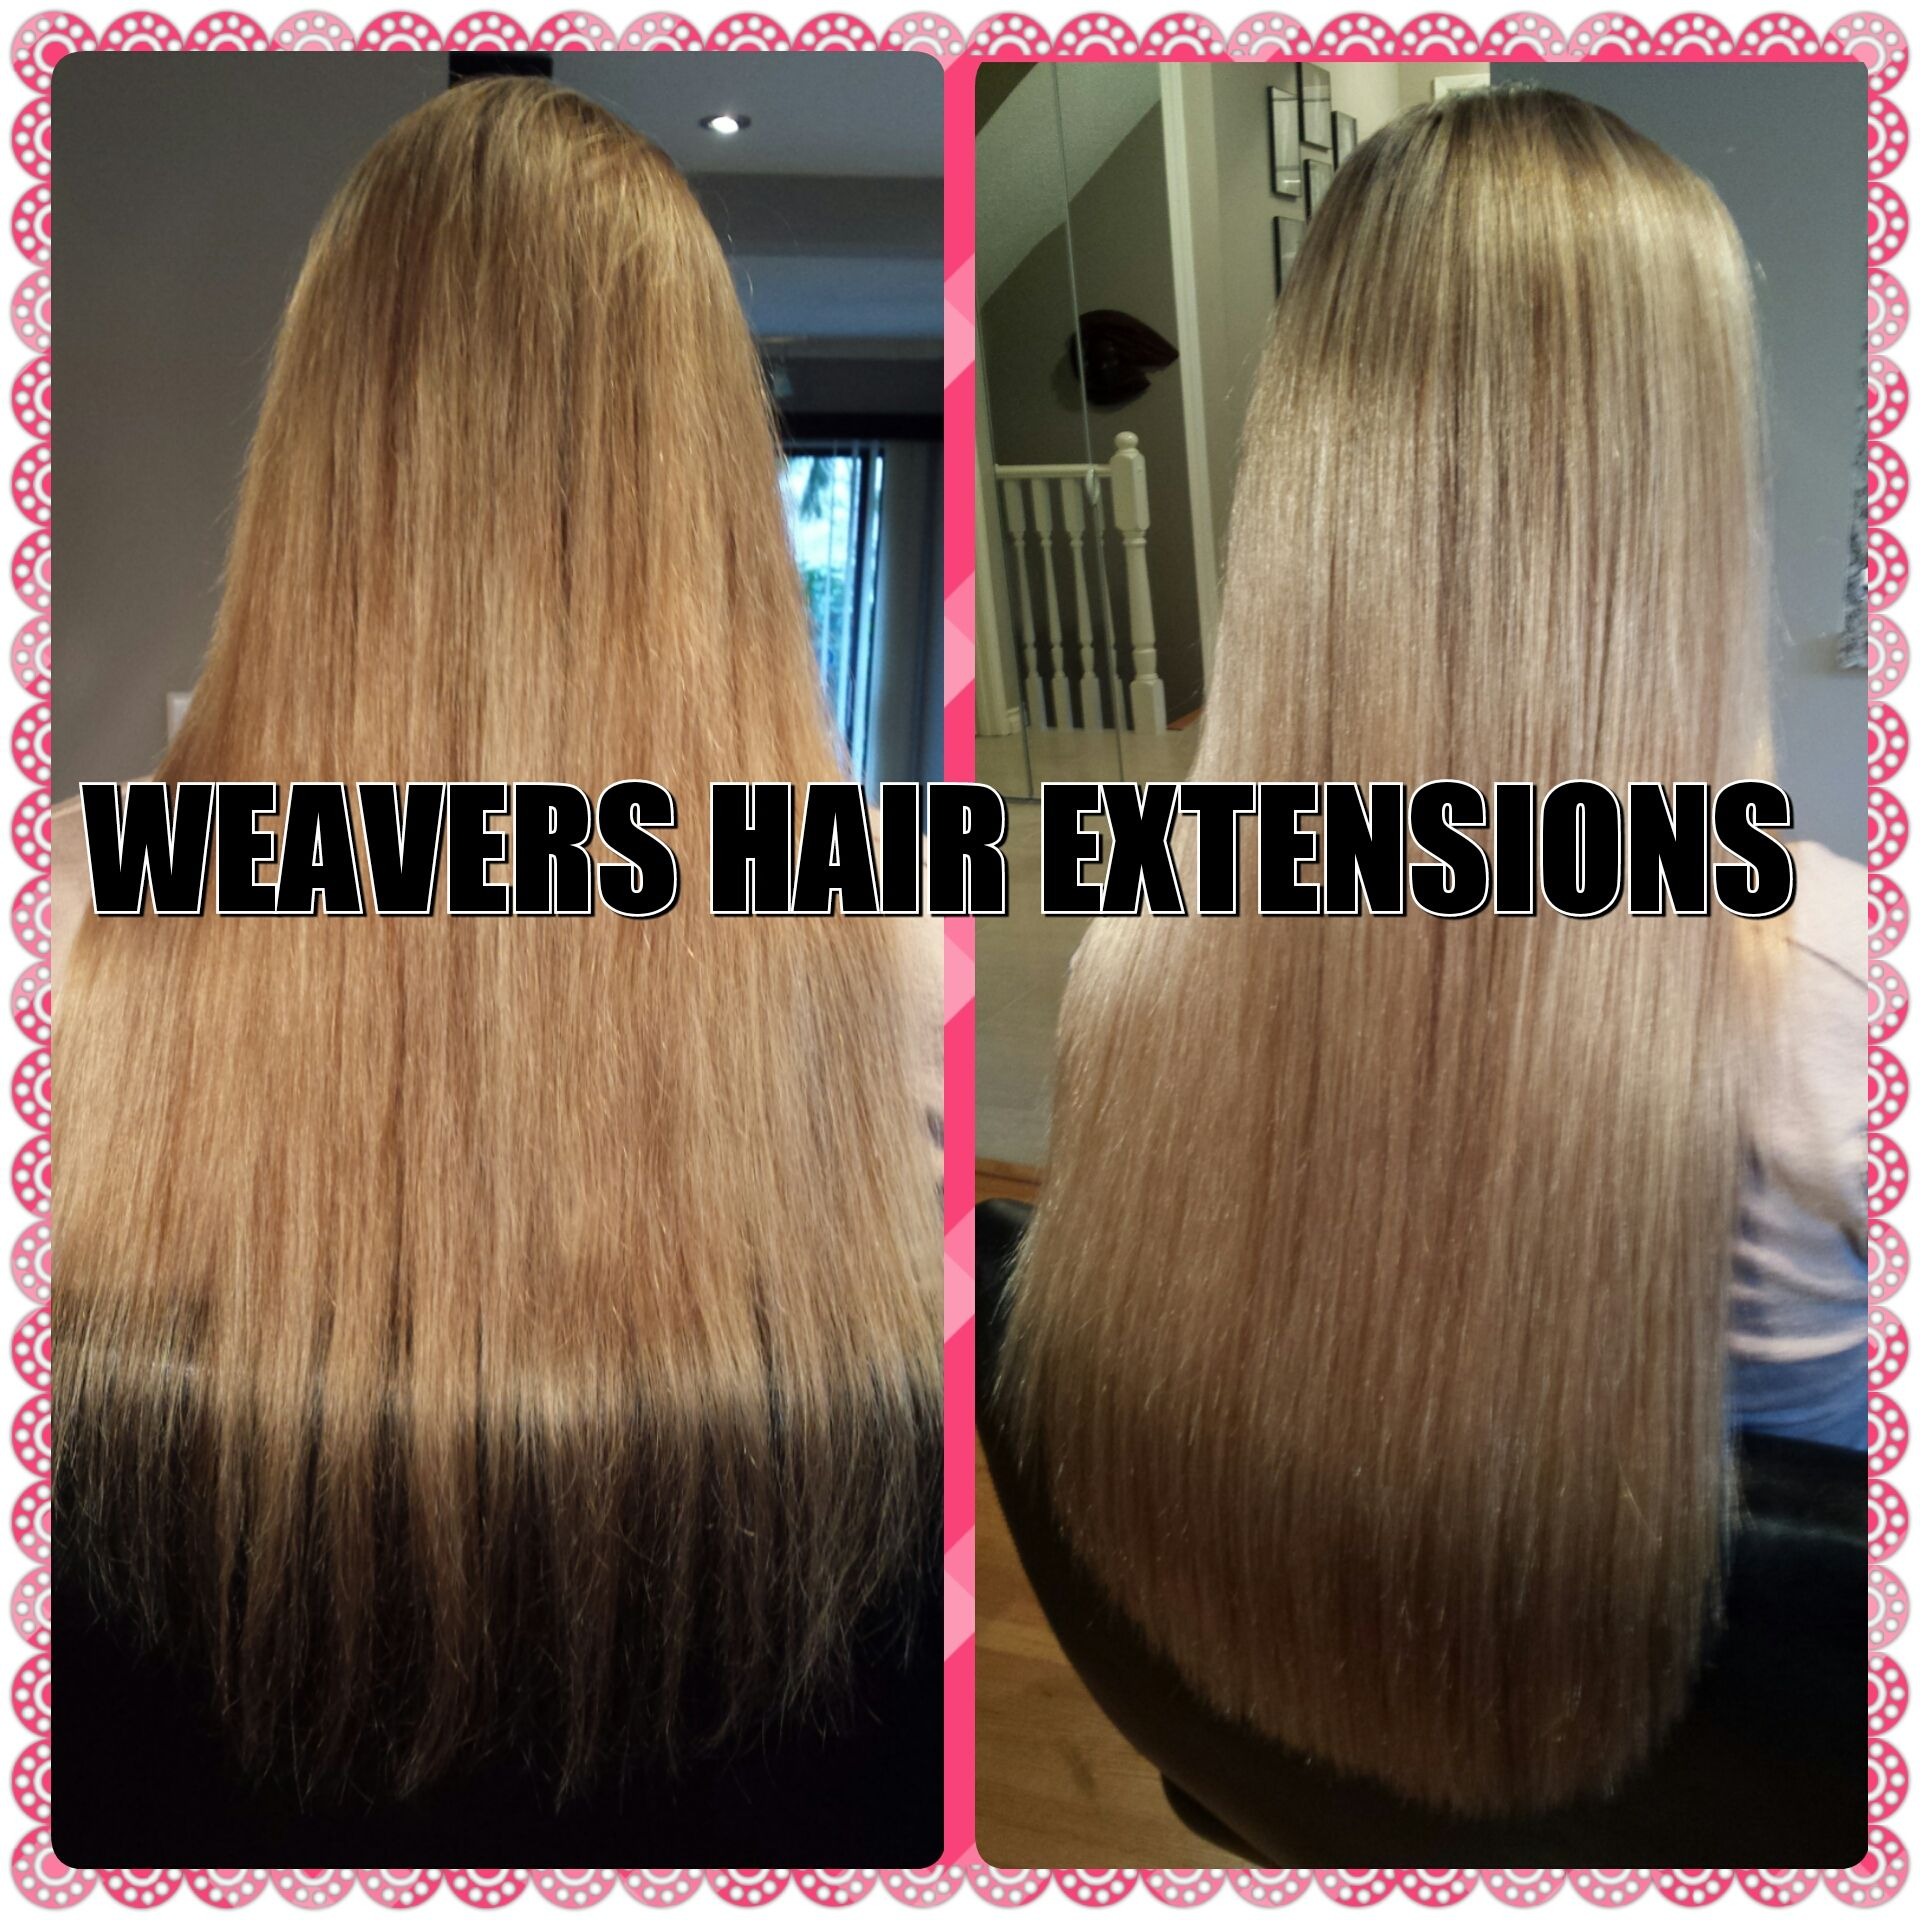 Do You Have Thin Hair At Weavers Hair Extensions In As Little As